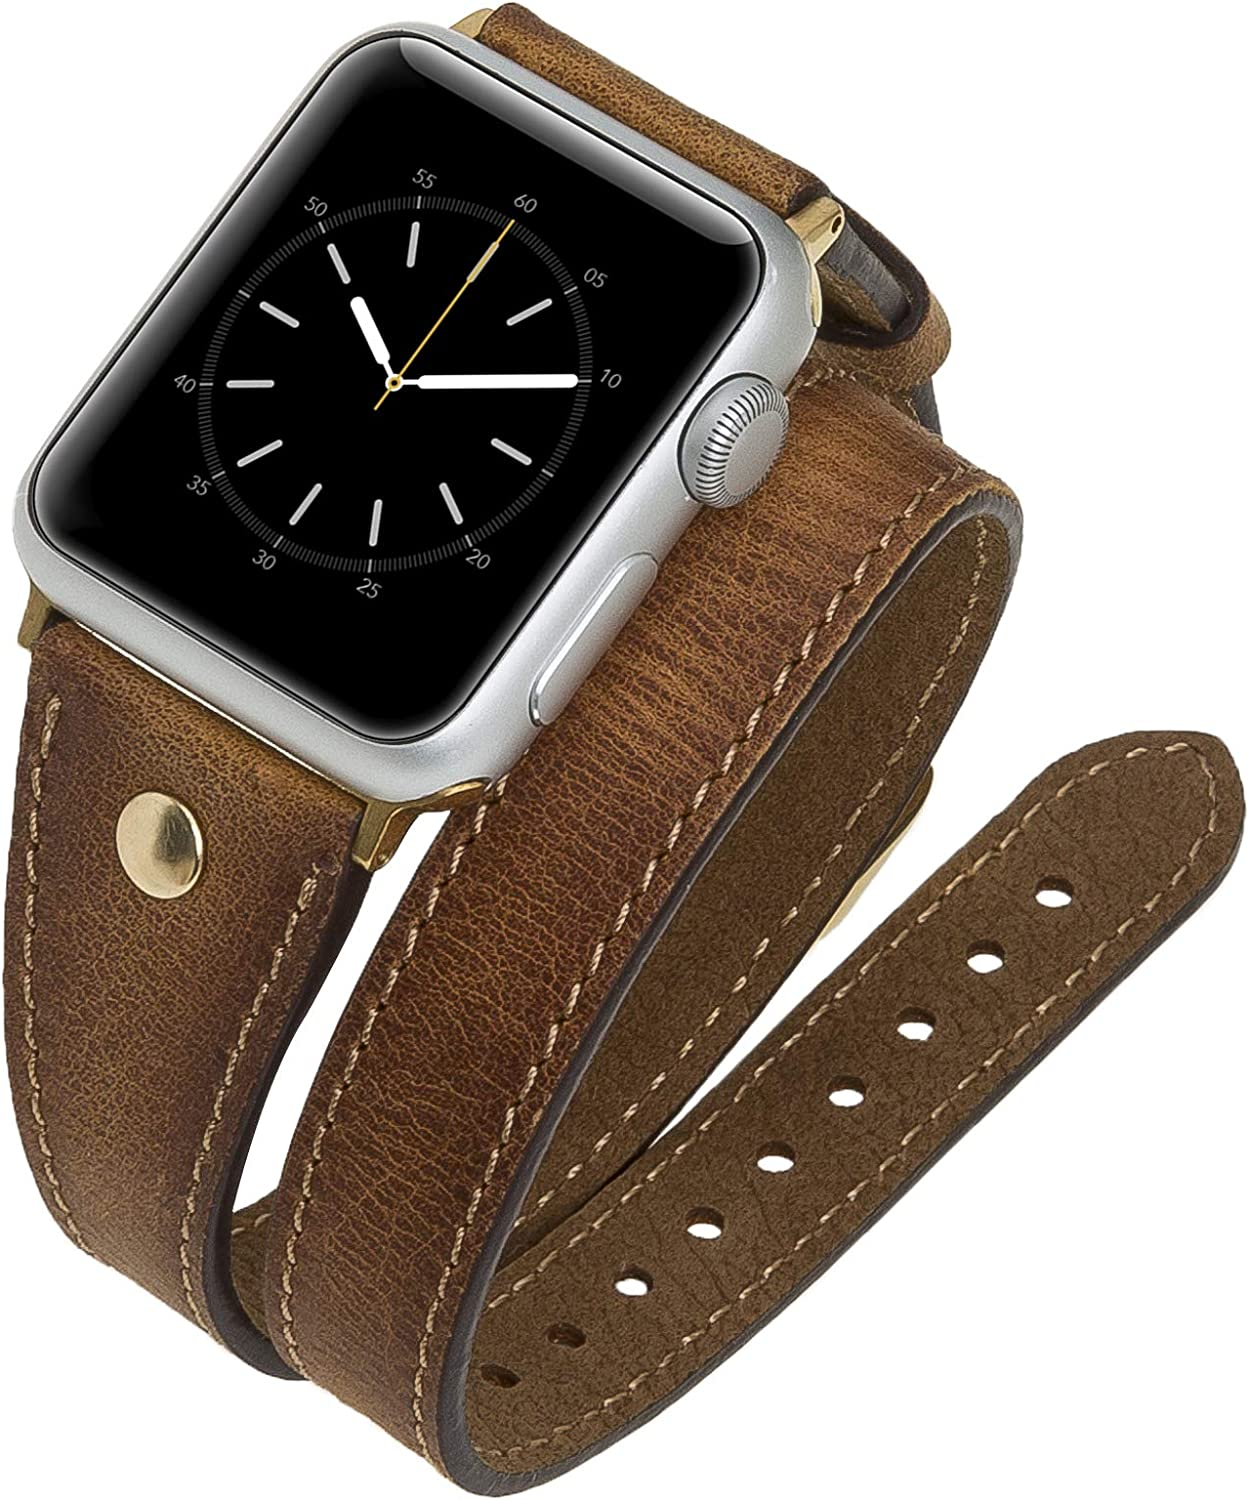 Venito Savona Double Wrap Leather Slim Watch Band w/Gold Stud Compatible with Apple Watch iwatch Series 6 as well as as Series 1, 2, 3, 4, 5 (Antique Brown w/ Gold Stainless Steel Hardware, 38mm-40mm)